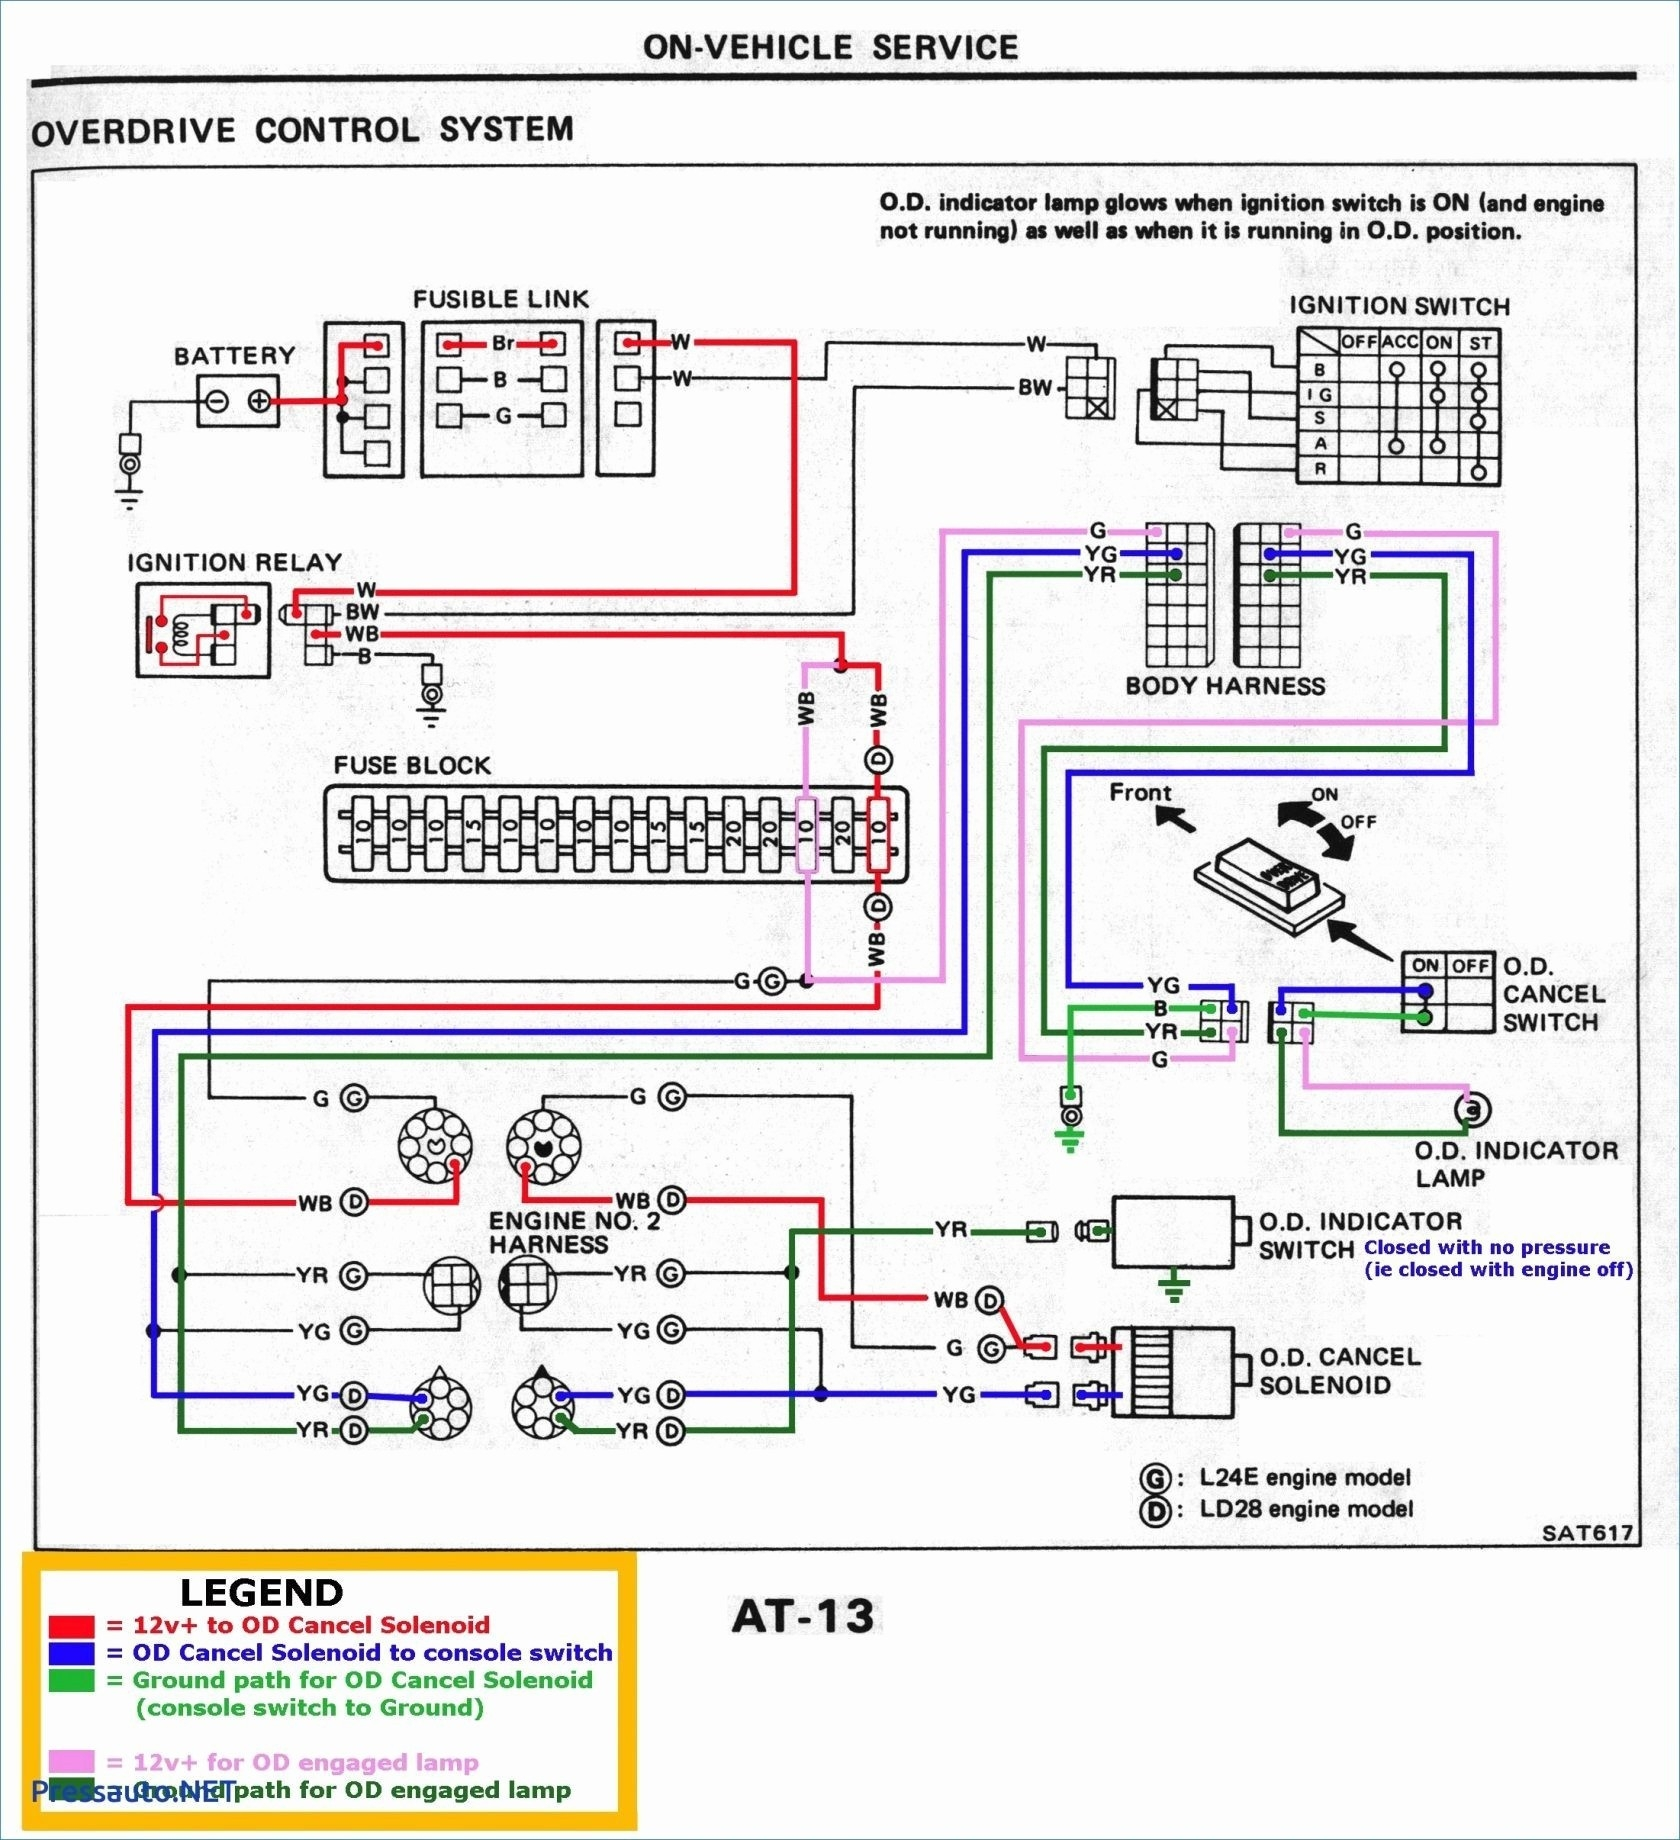 12 volt winch solenoid wiring diagram | free wiring diagram club car 48 volt to 12 volt reducer wiring diagram 12 volt winch wiring diagram